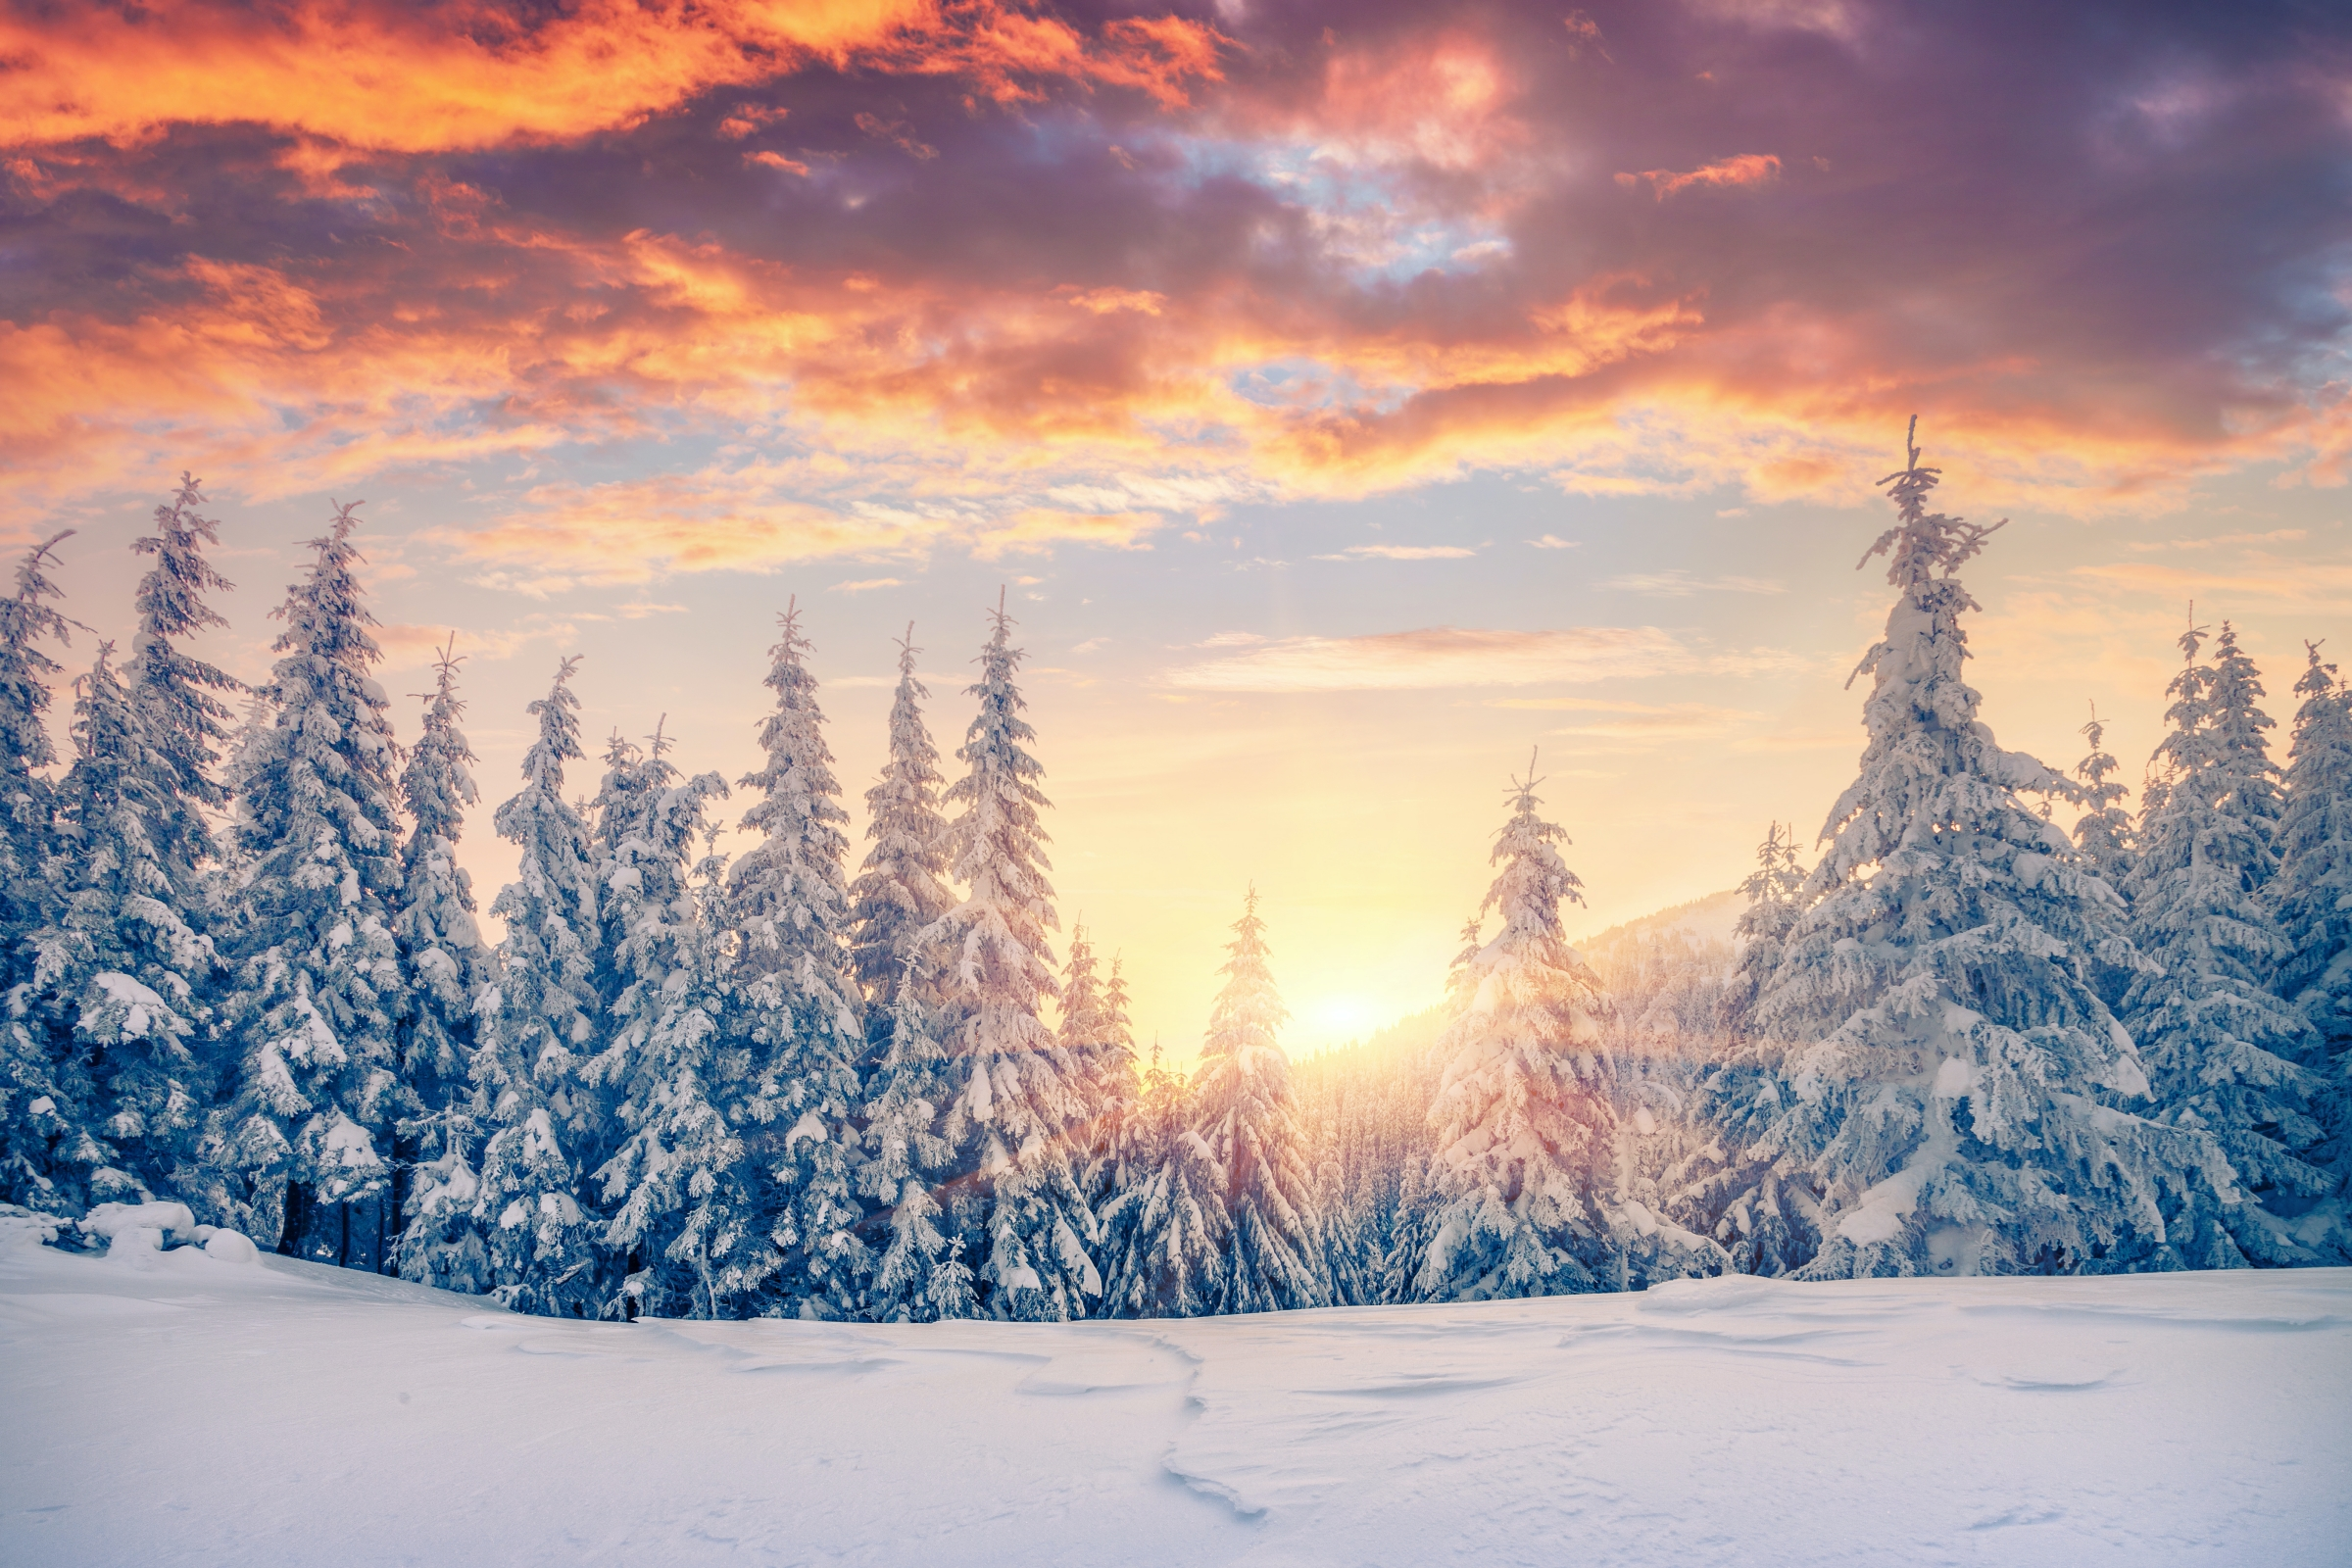 Winter Solstice 2020. The days will start getting longer. Daily more warm light to soothe the cold, winter darkness.